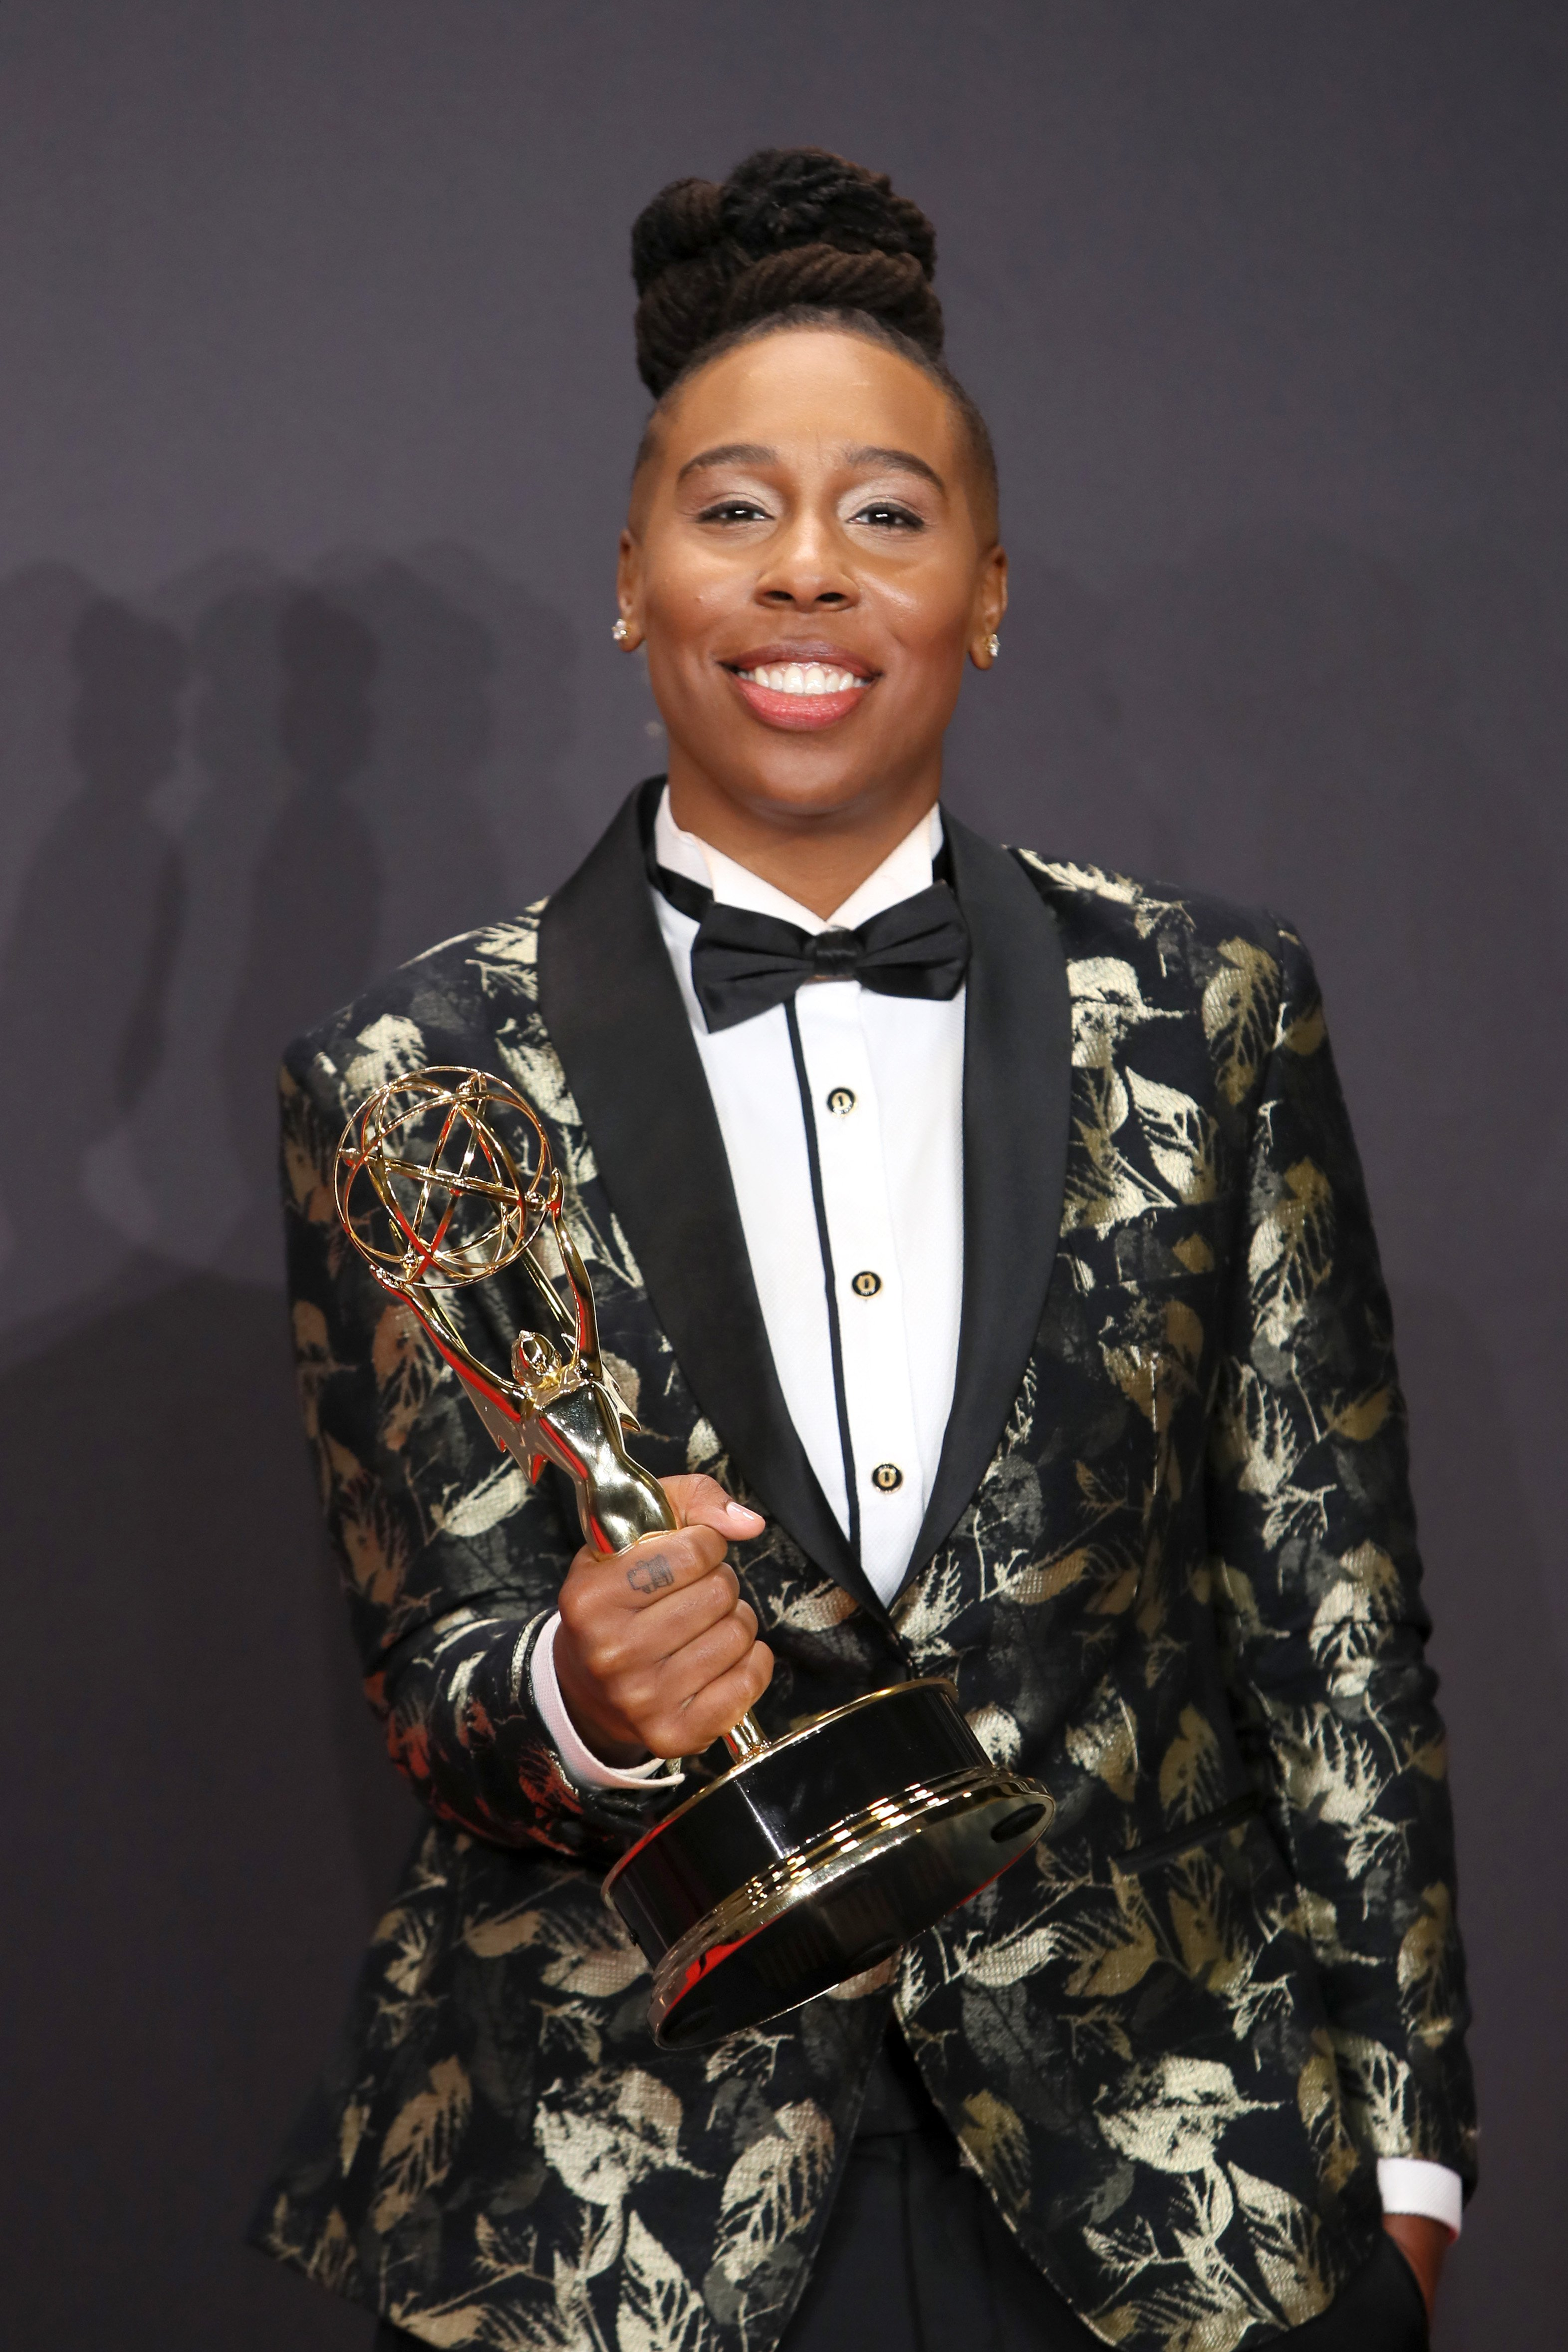 Lena Waithe clutching her Emmy Award for Outstanding Writing for a Comedy Series in September 2017. | Photo: Getty Images